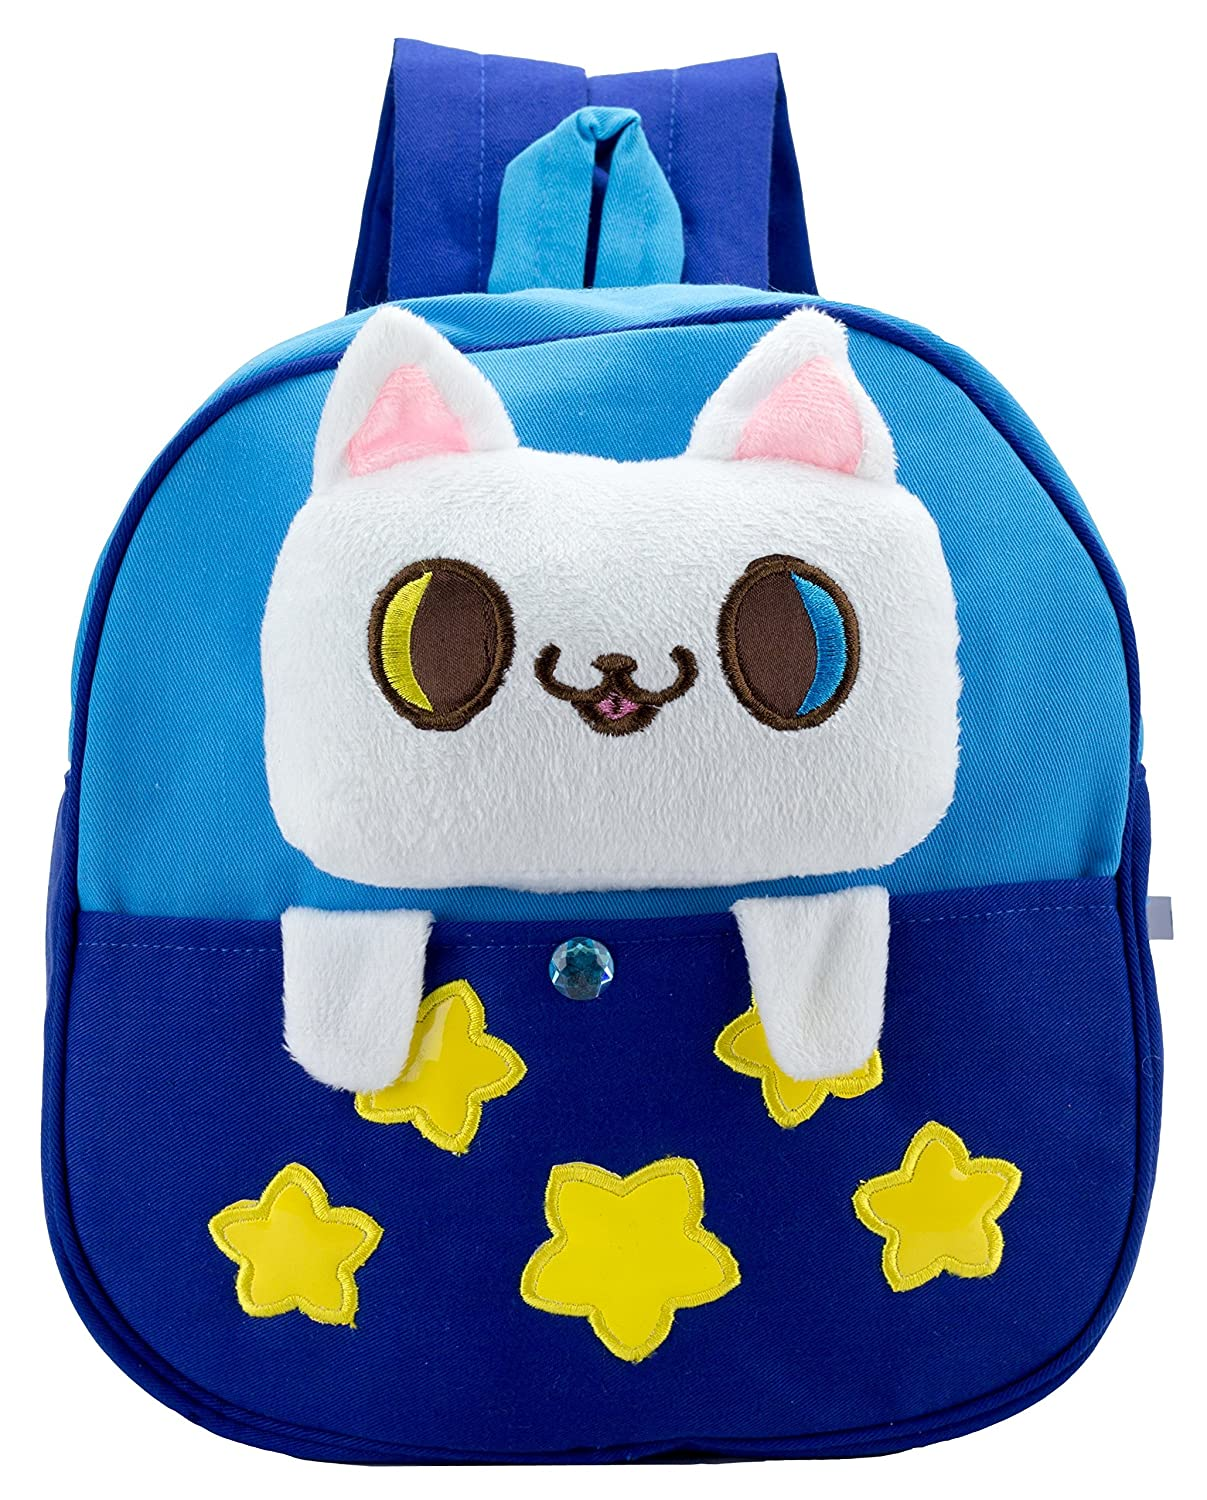 7c8911bde306 Amazon.com  JS My First Backpack - Cute Cartoon Animal Cotton Bag (Cat)   Baby